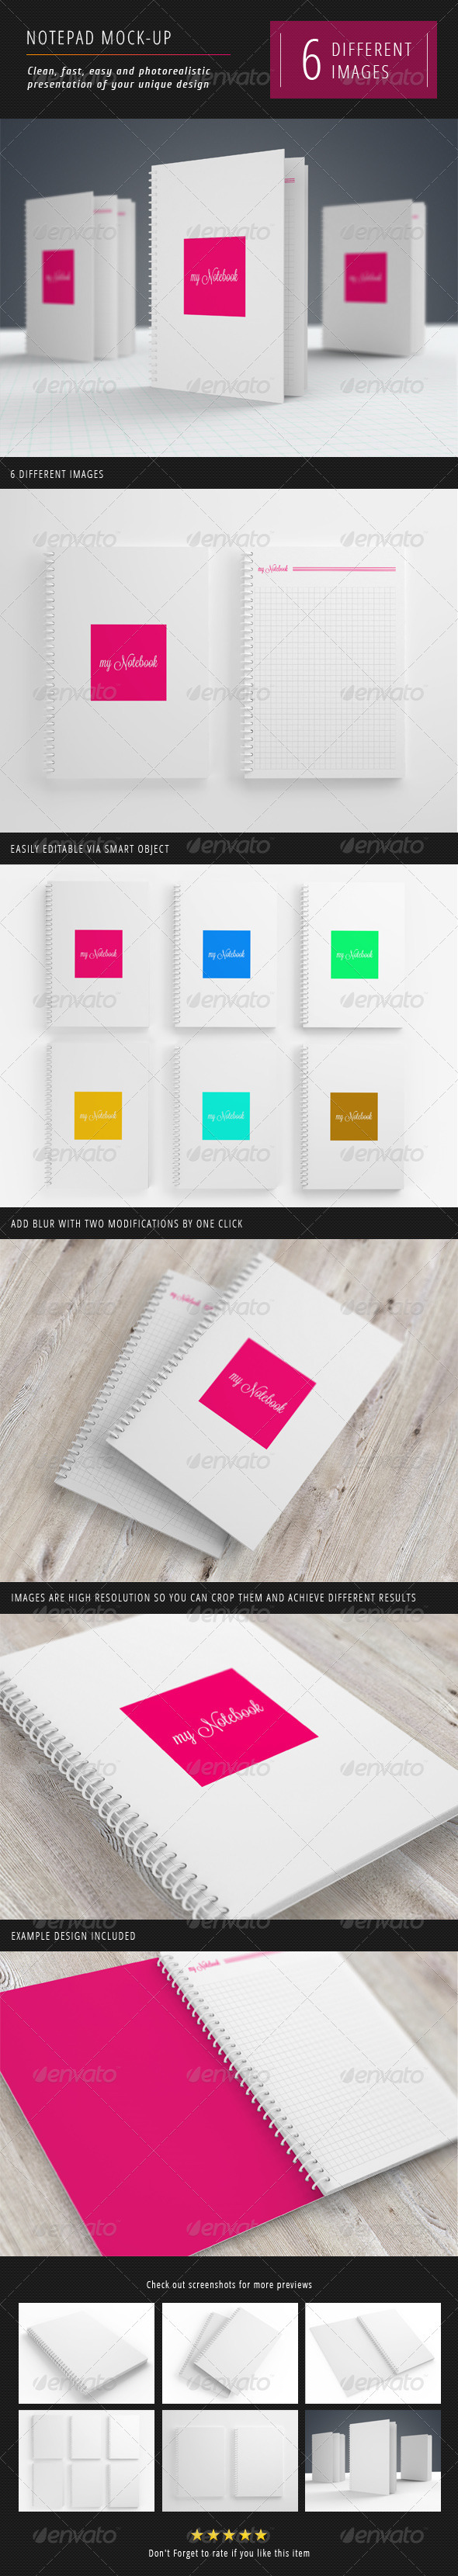 GraphicRiver Notebook Mock-Up 3260729